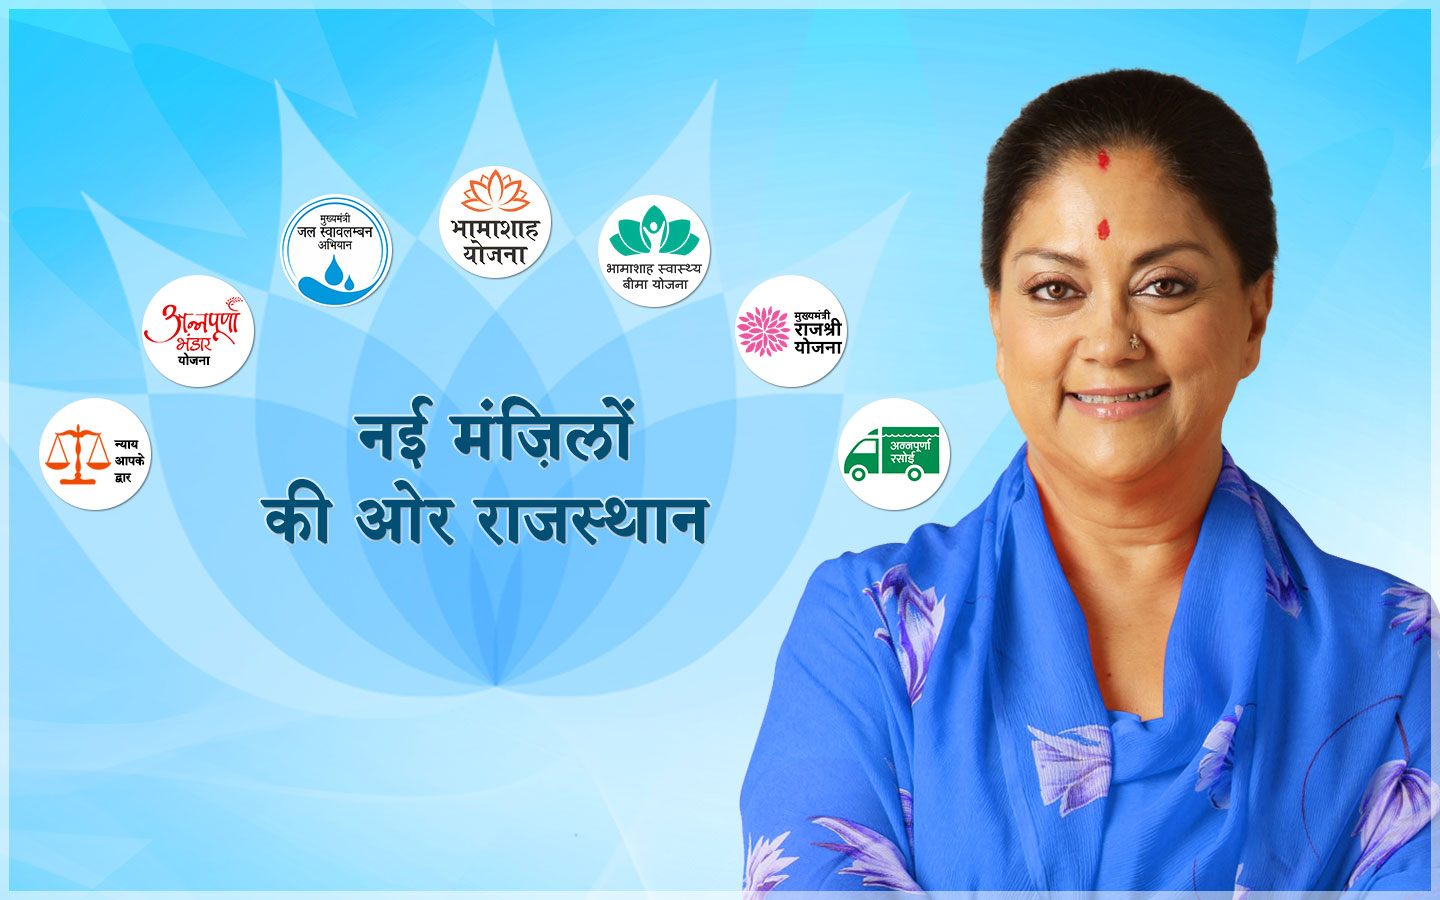 vasundhara raje wallpaper towards new horizons